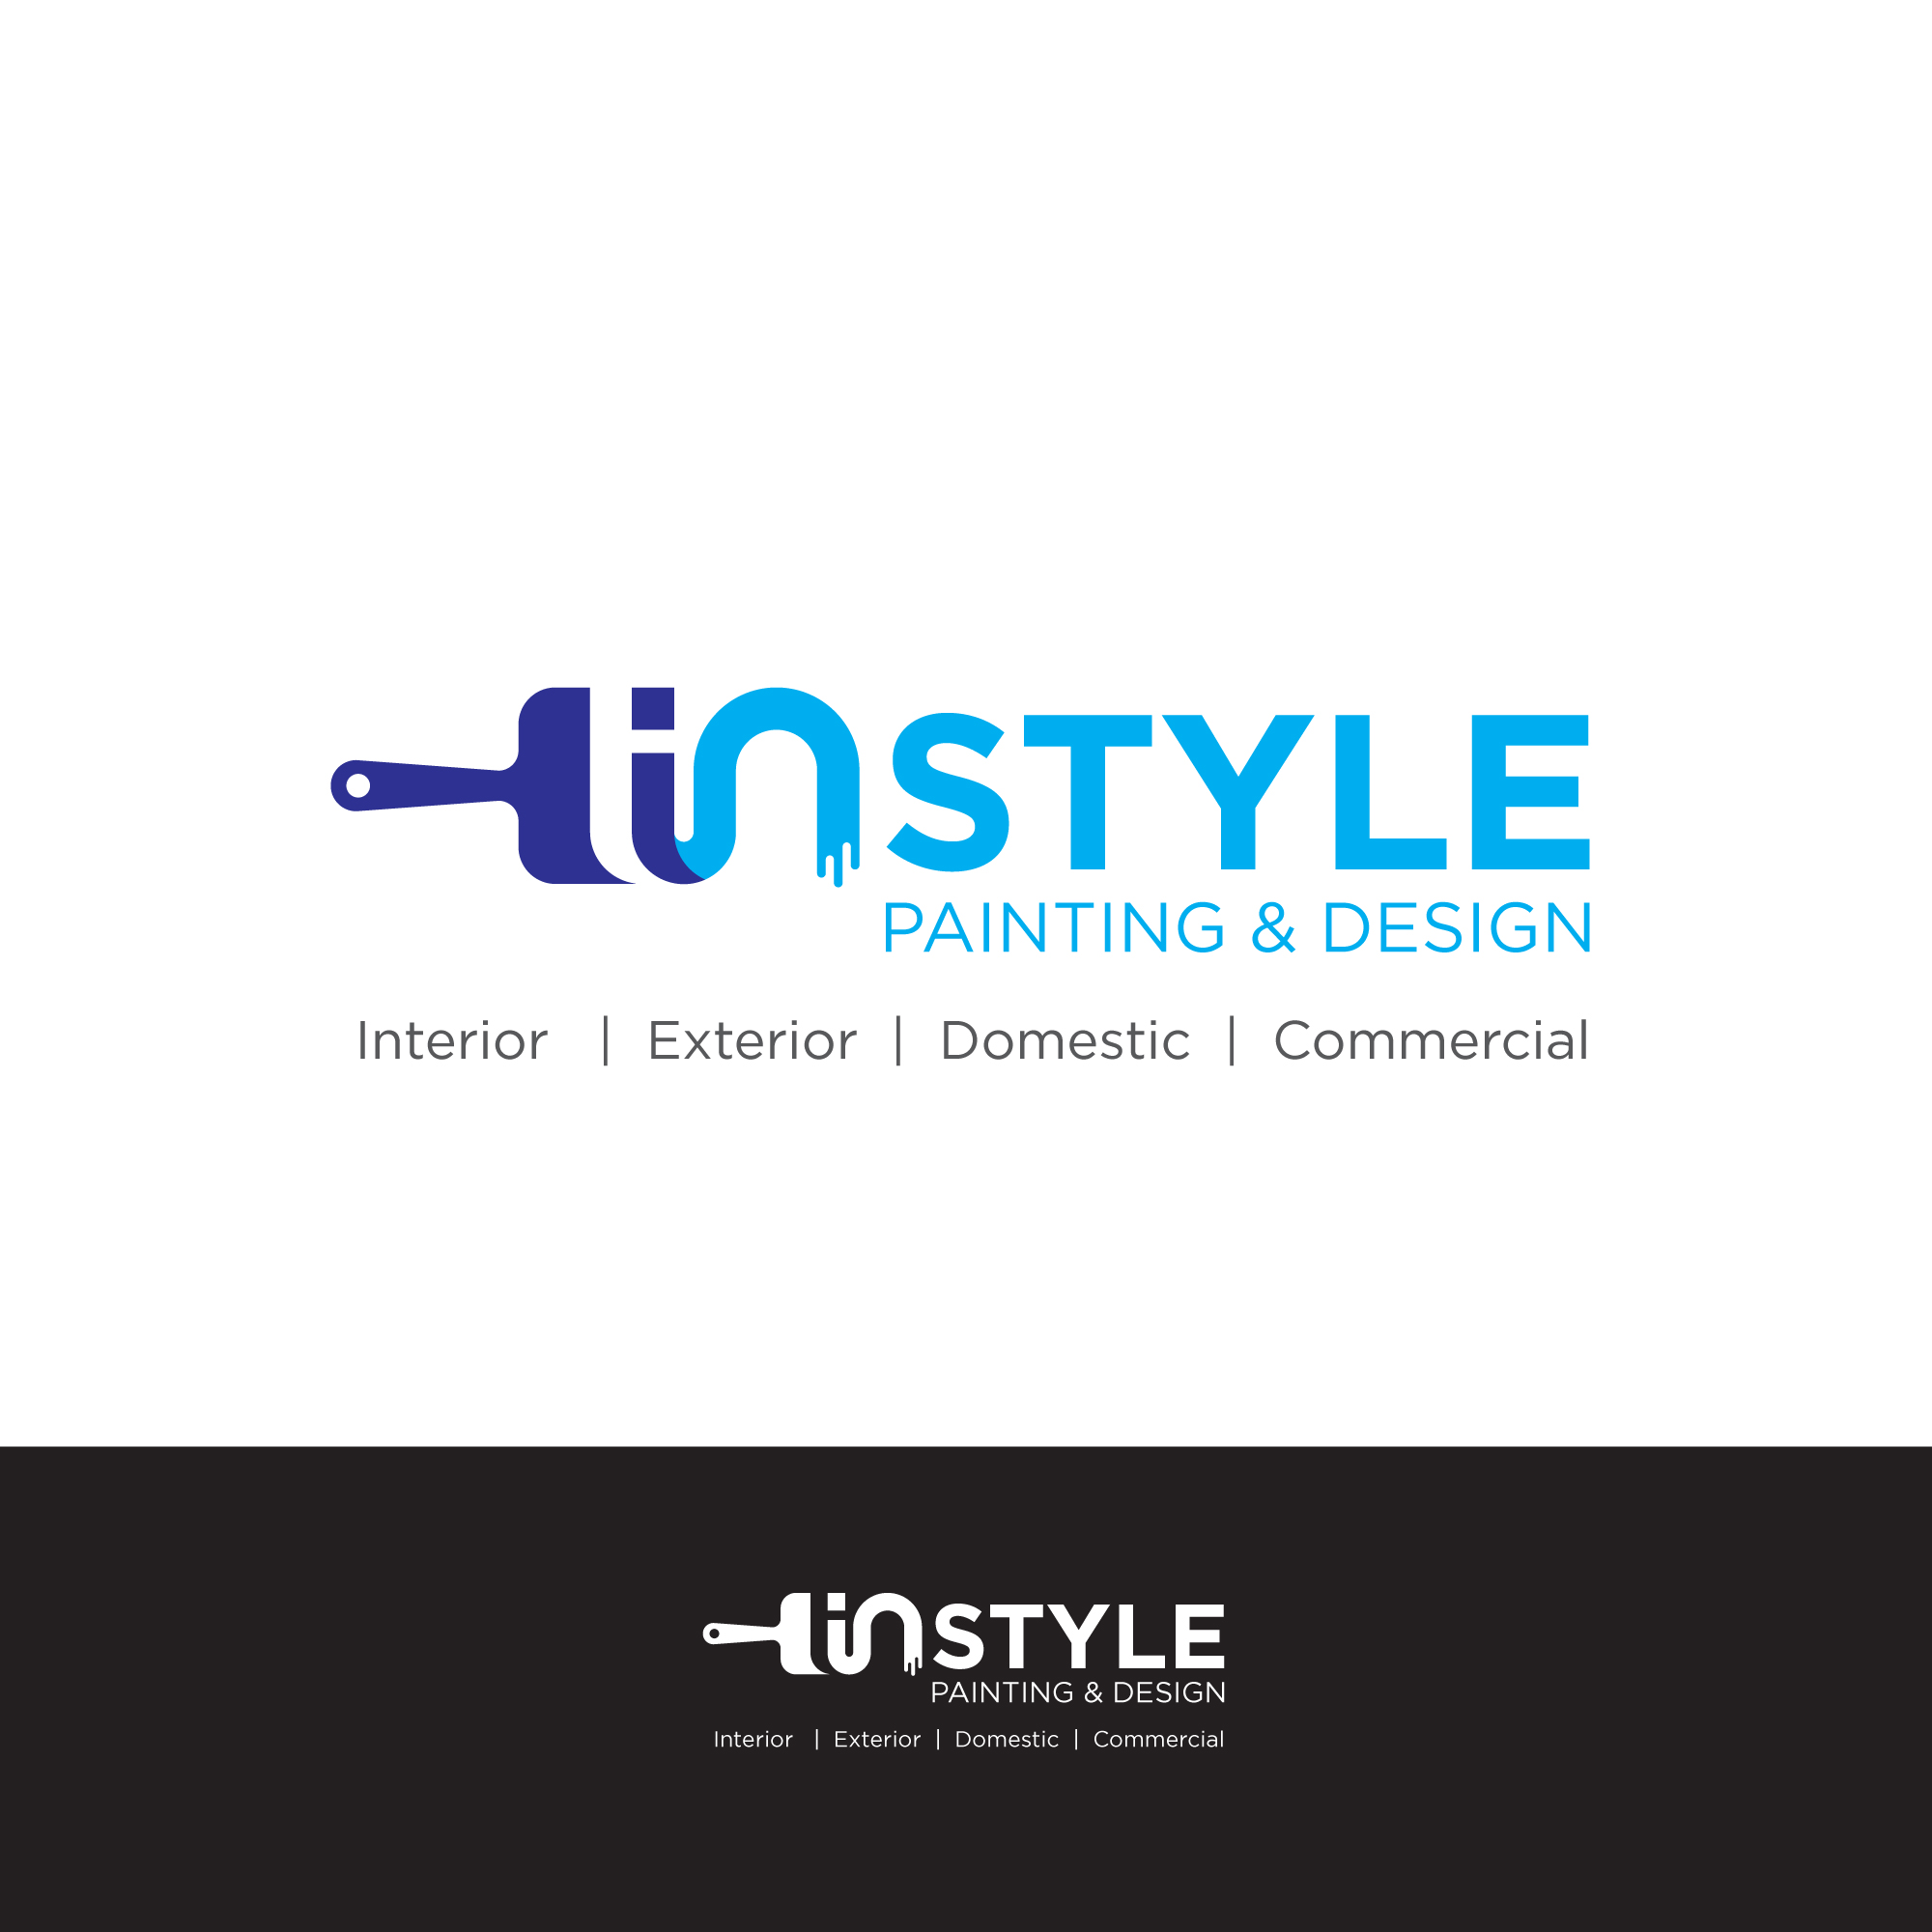 Logo Design For Instyle Painting Amp Design Interior Exterior Domestic Commercial By Wayansariadi Design 23526346